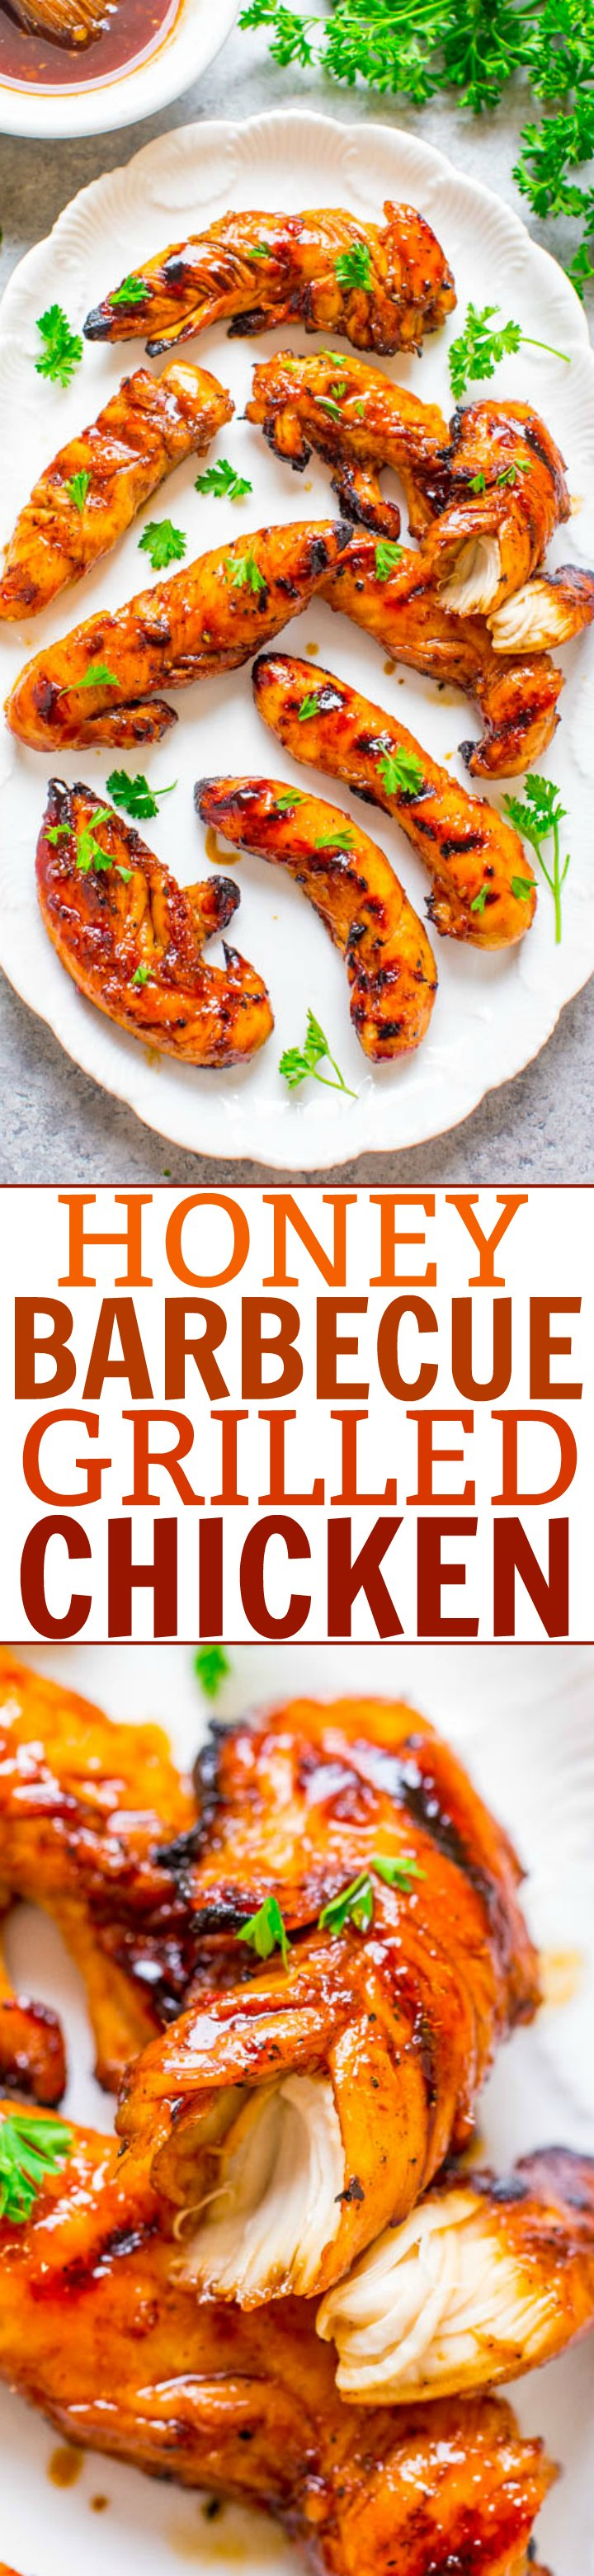 Honey Barbecue Grilled Chicken - Tender, juicy, full of FLAVOR, and a great recipe to jazz up barbecue chicken!! EASY, healthy, ready in 10 minutes, zero cleanup, perfect for backyard barbecues or easy weeknight dinners!!